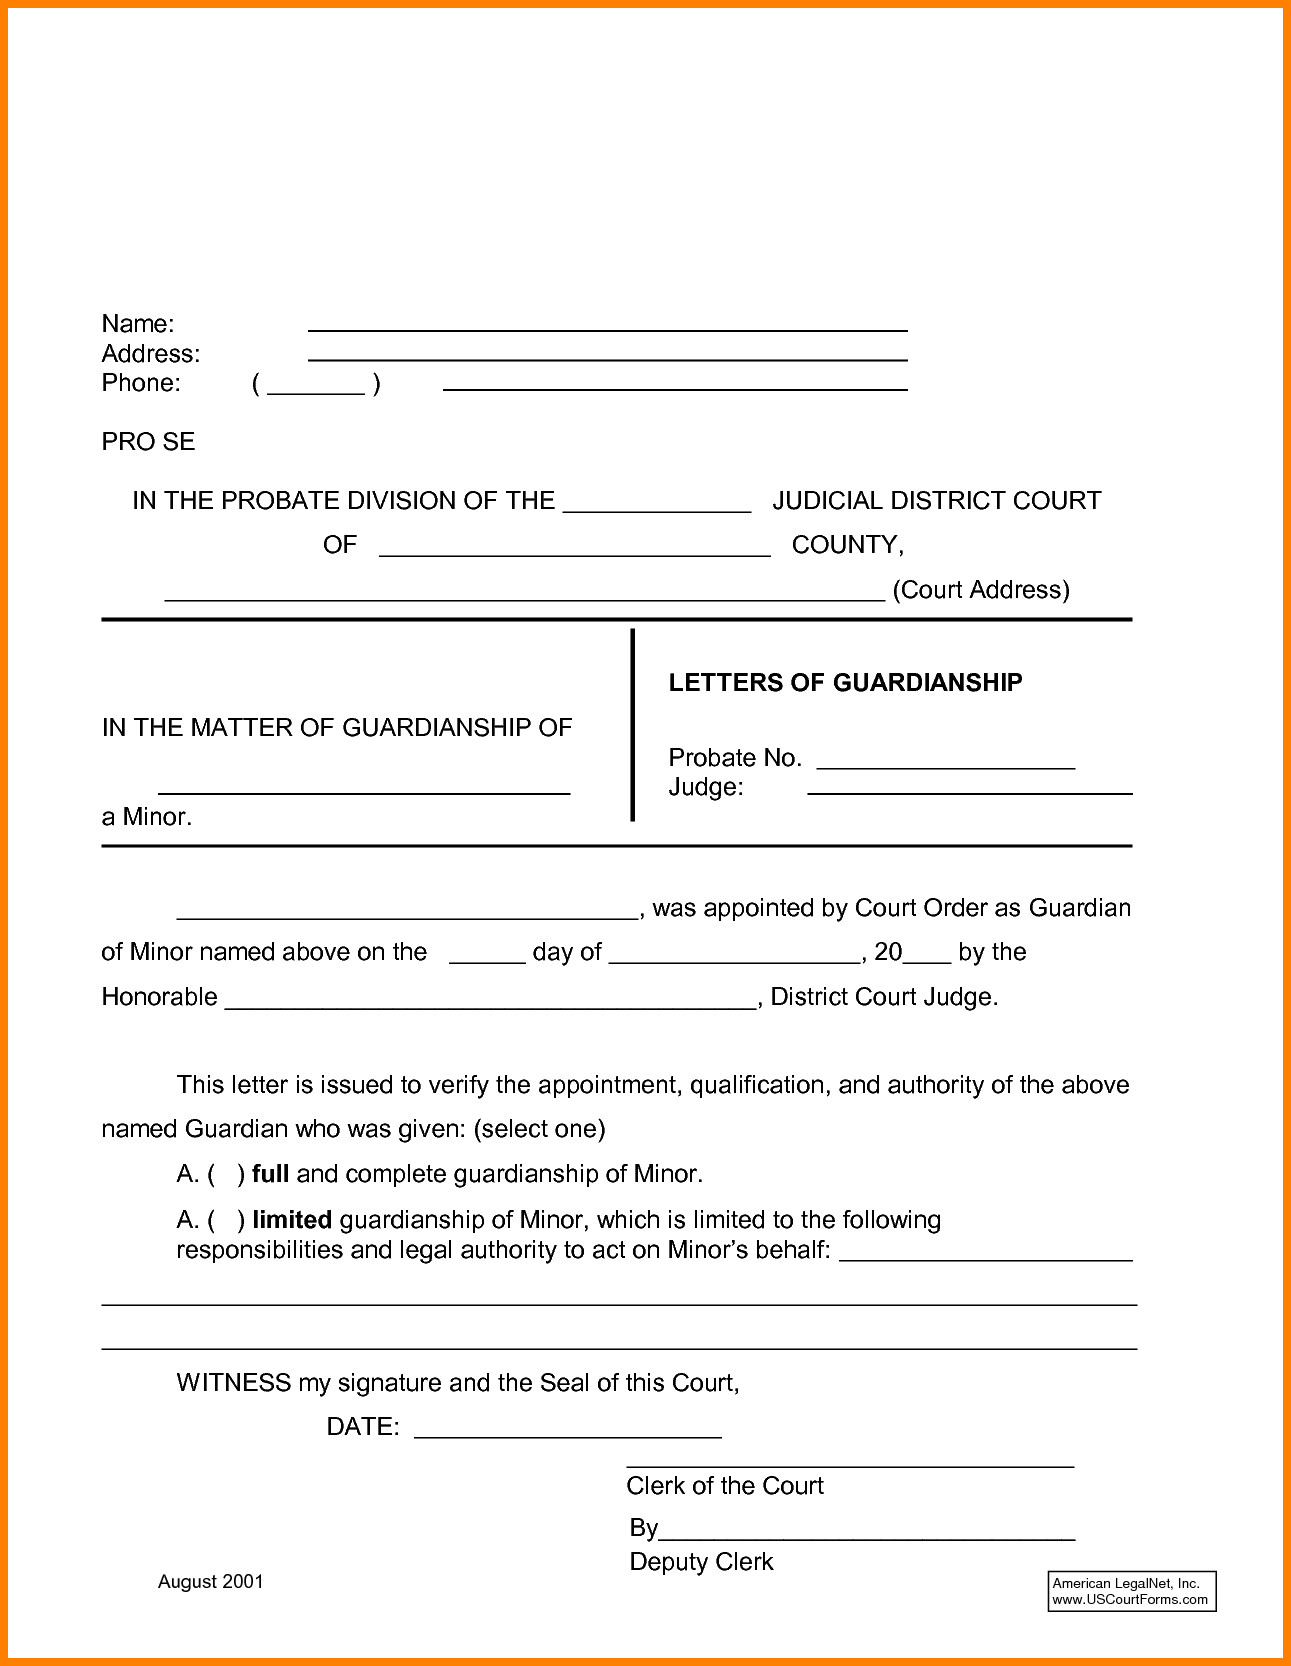 free temporary guardianship letter template example-Sample Guardianship Letter Unique Nice Temporary Guardianship Letter Template Free for Sample Guardianship Letter 16-o